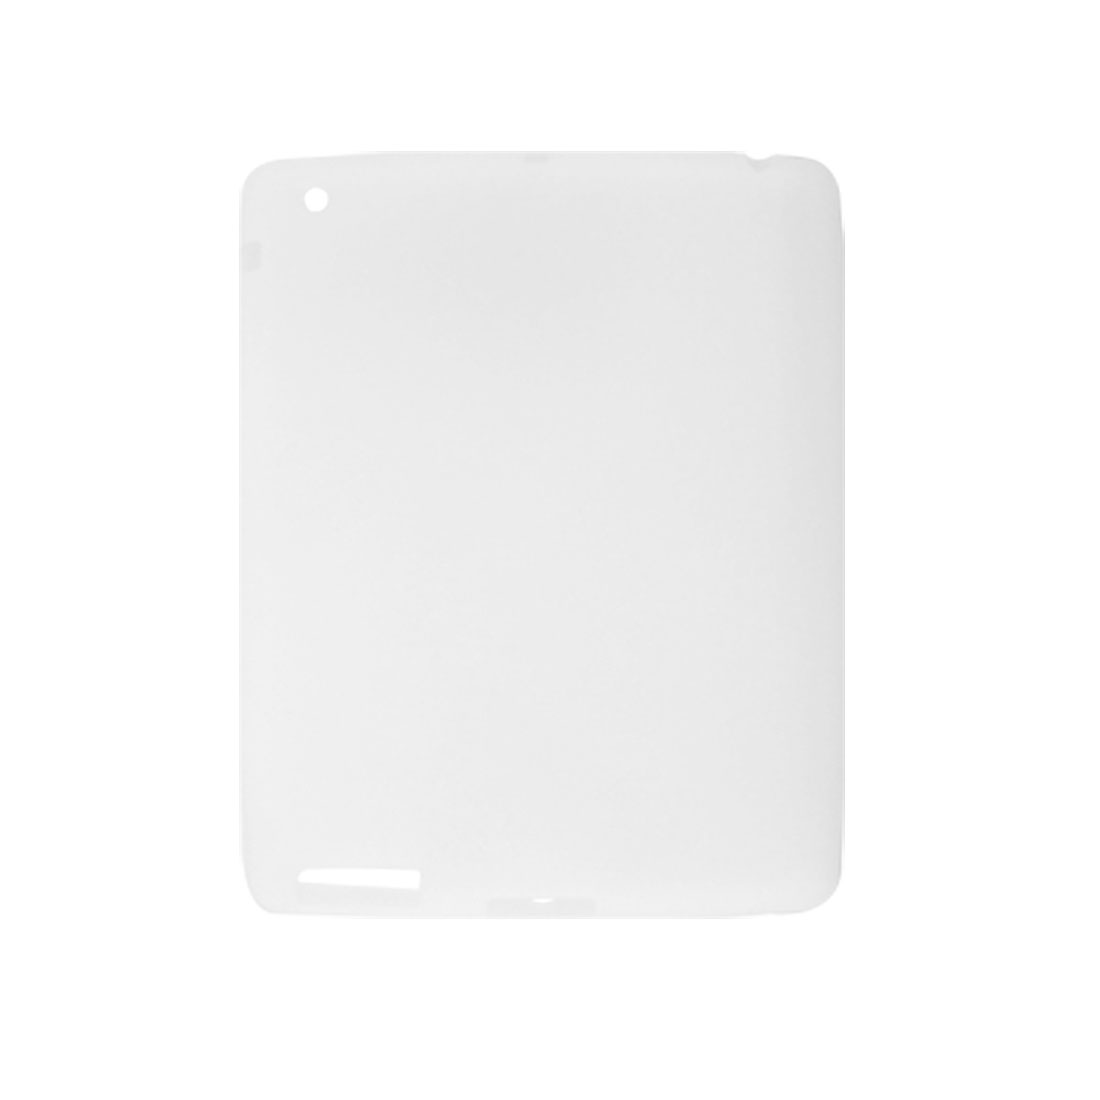 White Protective Silicone Skin Shell Cover for iPad 2G